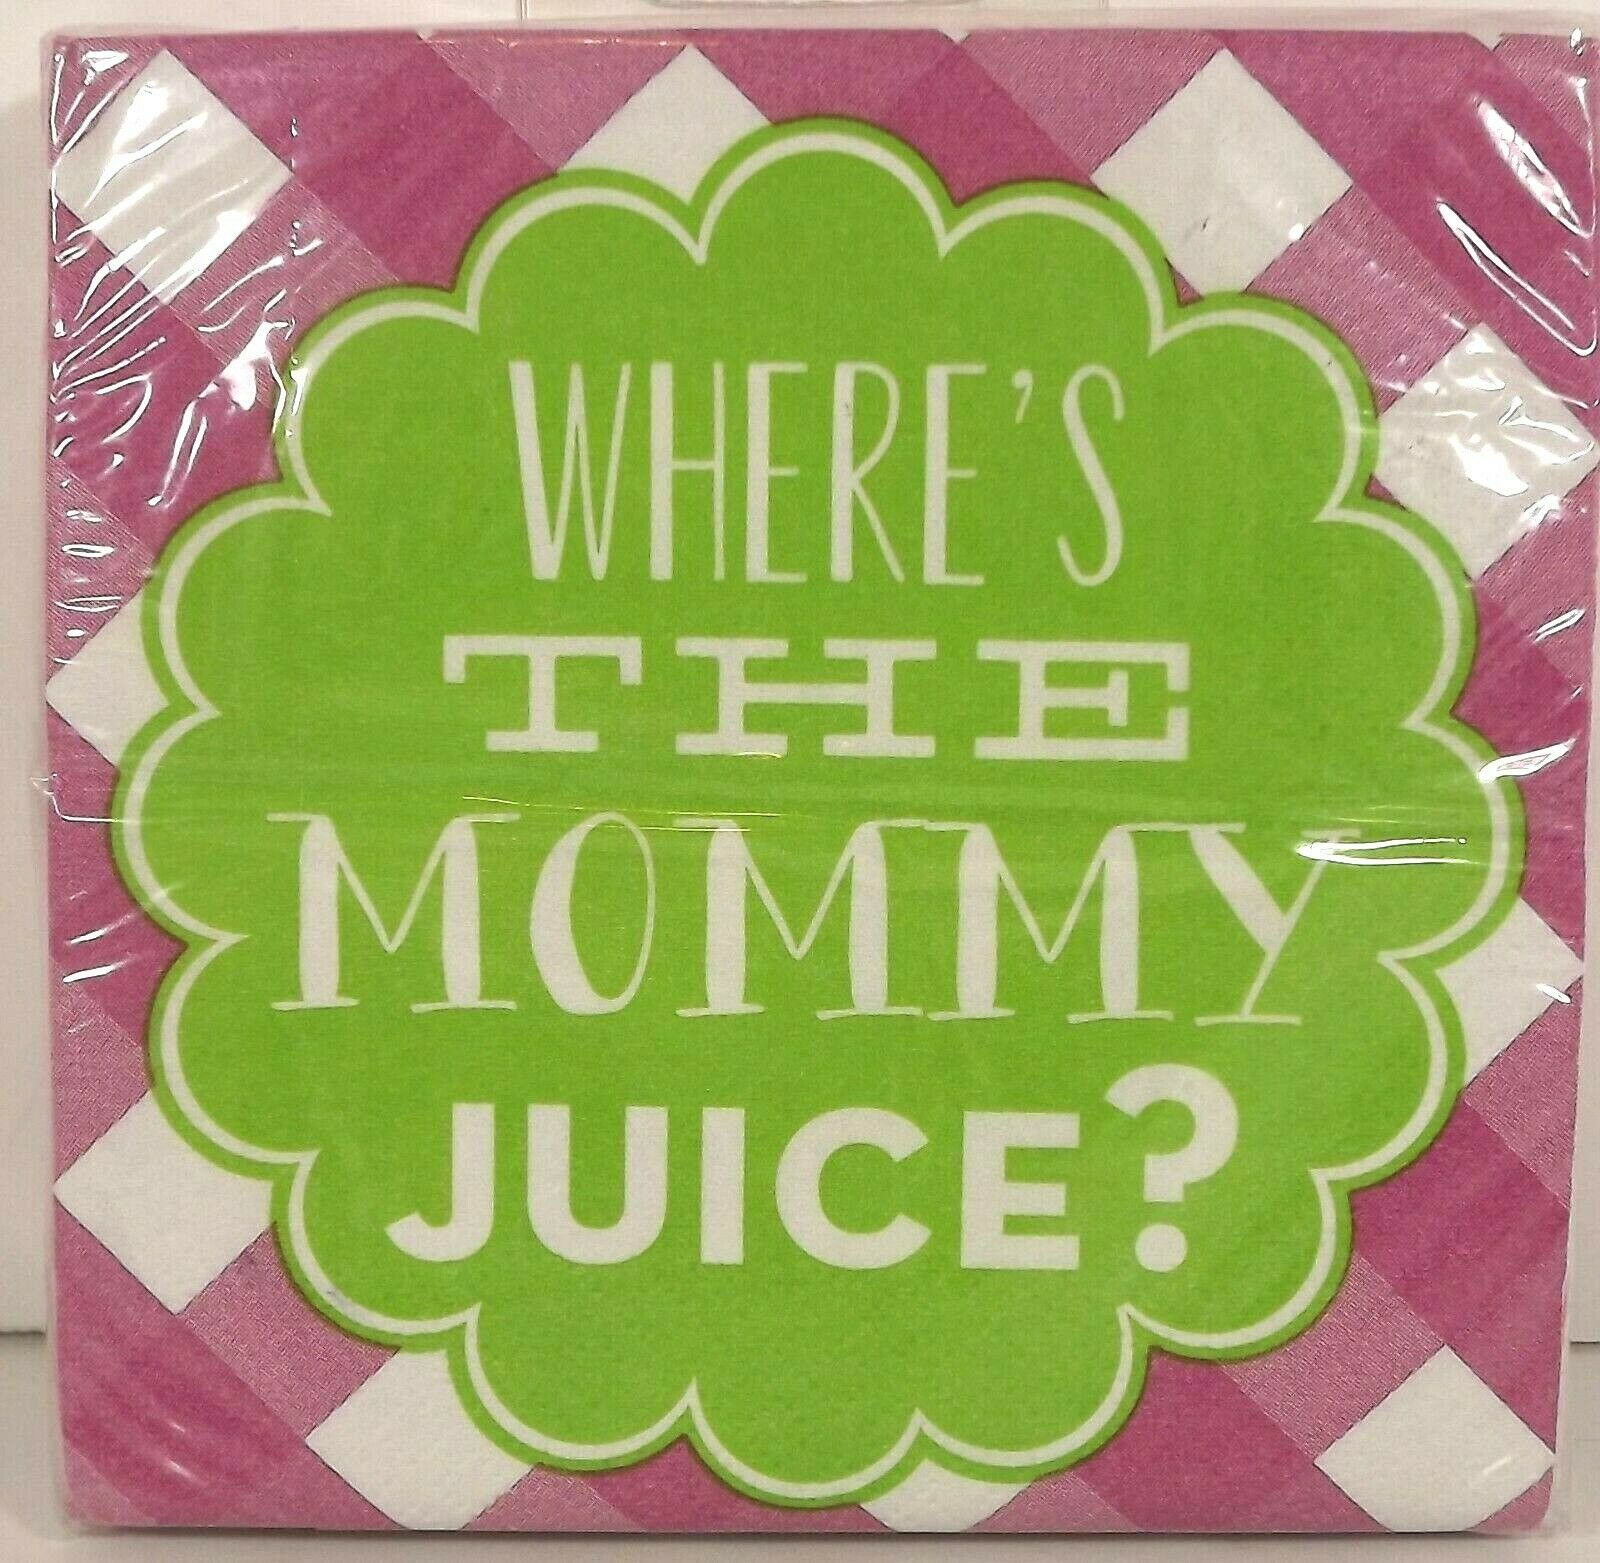 Where's The Mommy Juice? Inviting Company Cocktail Napkins 20ct 3 Ply